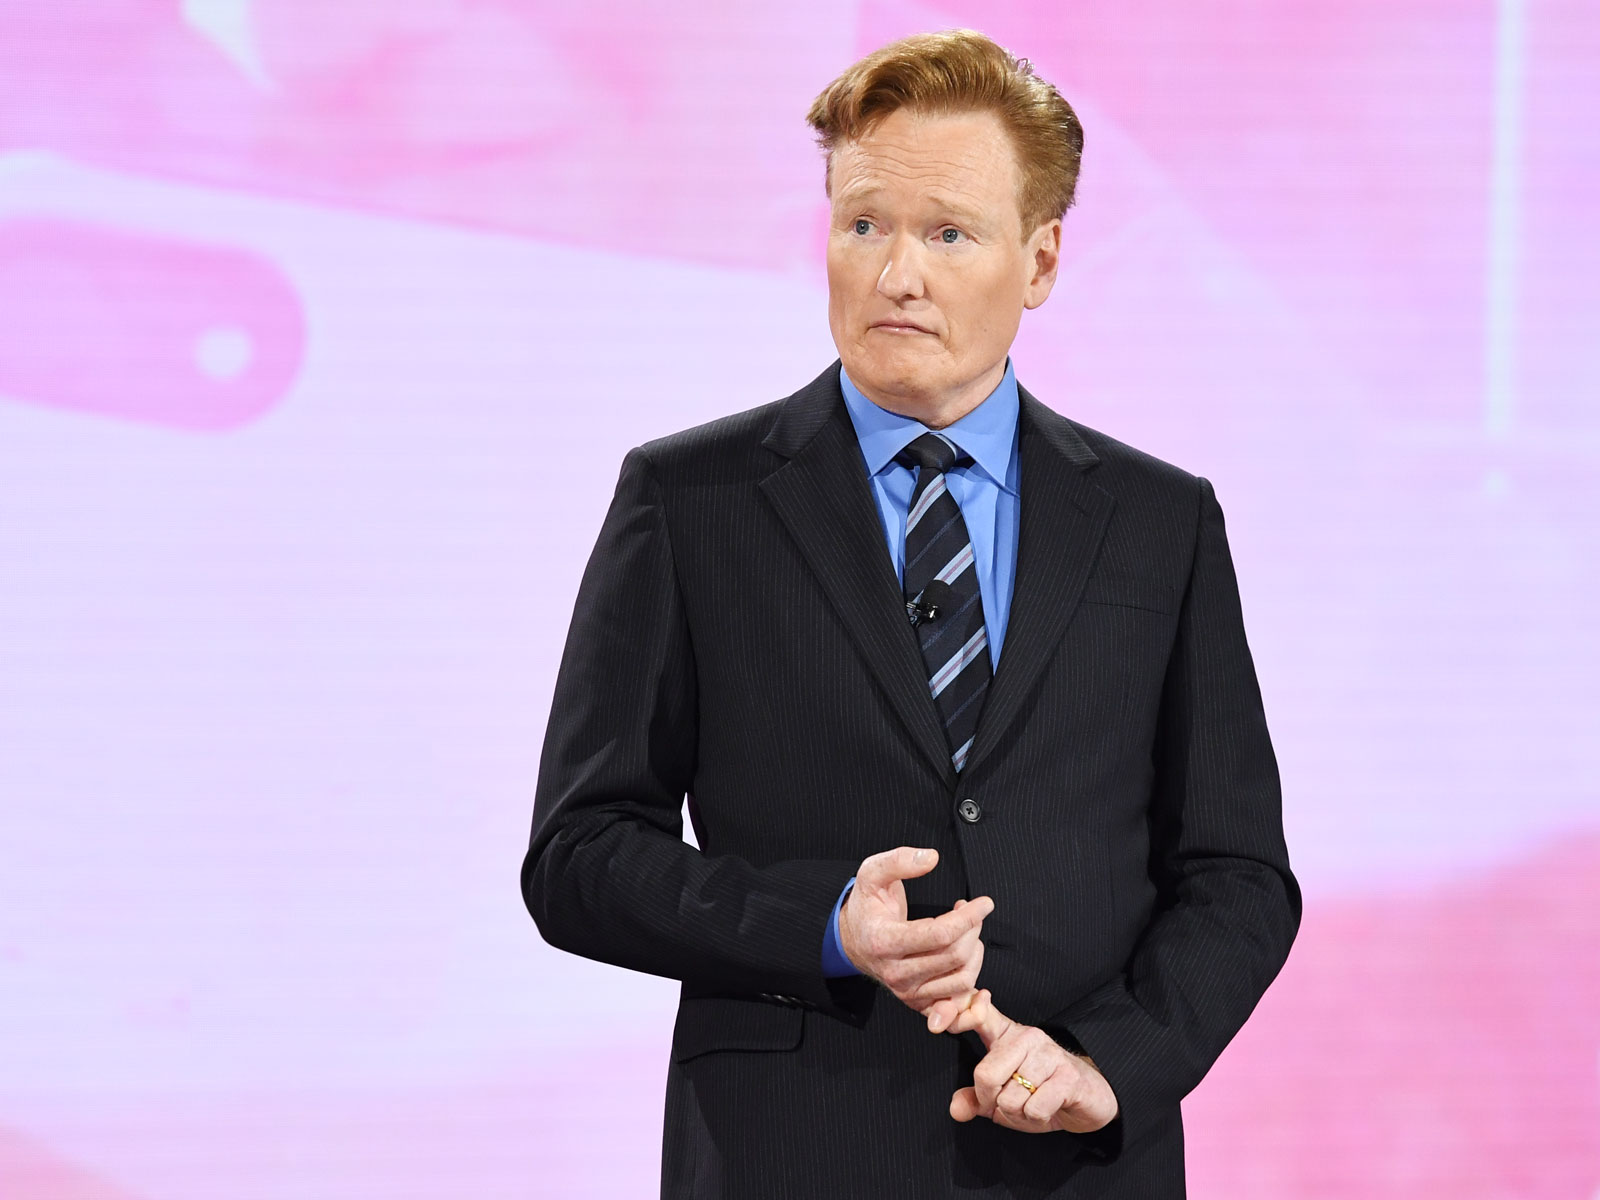 Conan O'Brien's Awkward Wine Tasting Outtakes Are Hilarious